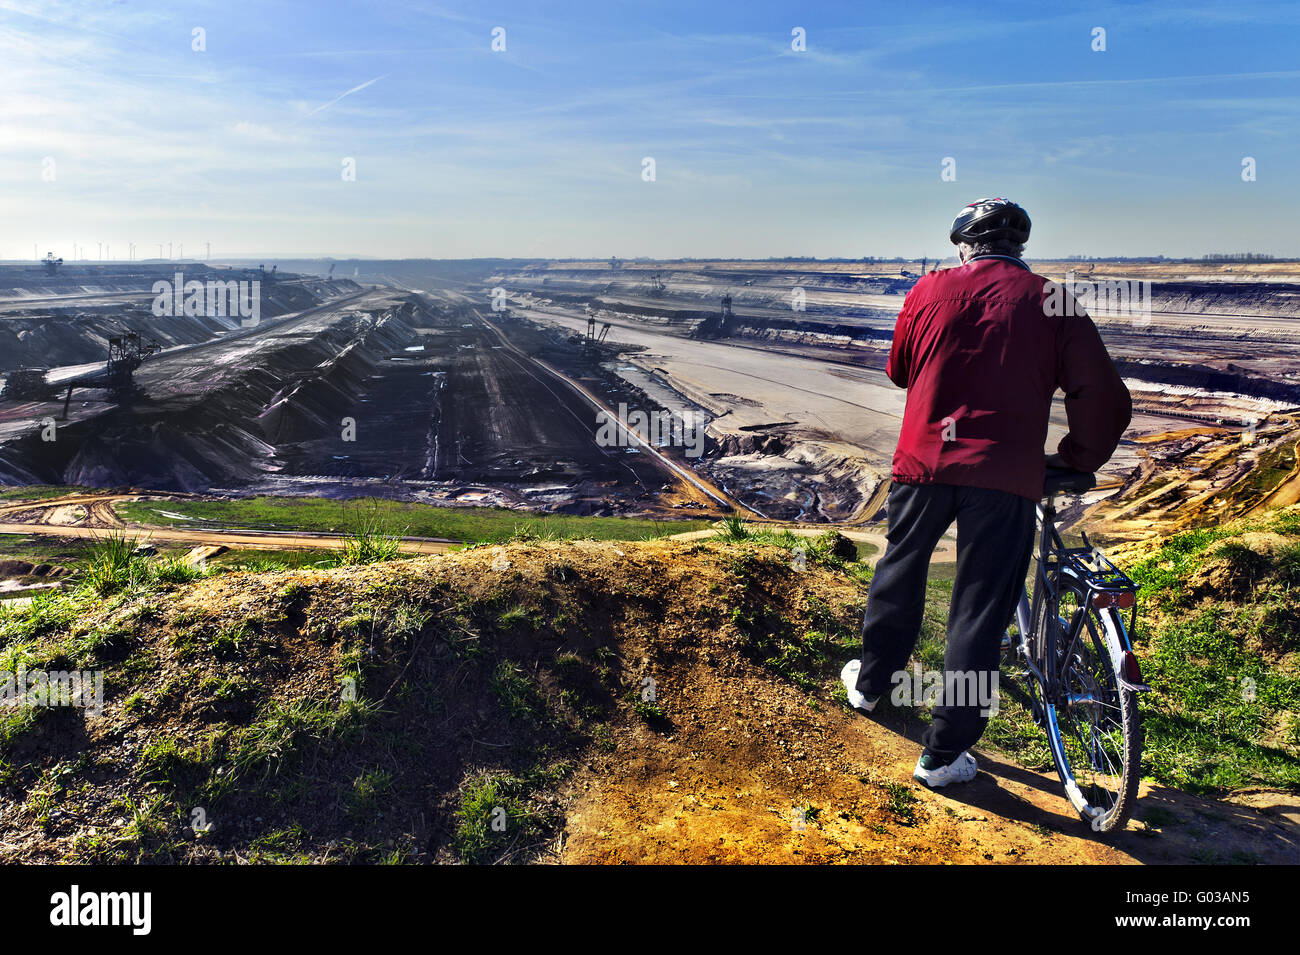 Man with bicycle stands at the edge of a pit mine - Stock Image